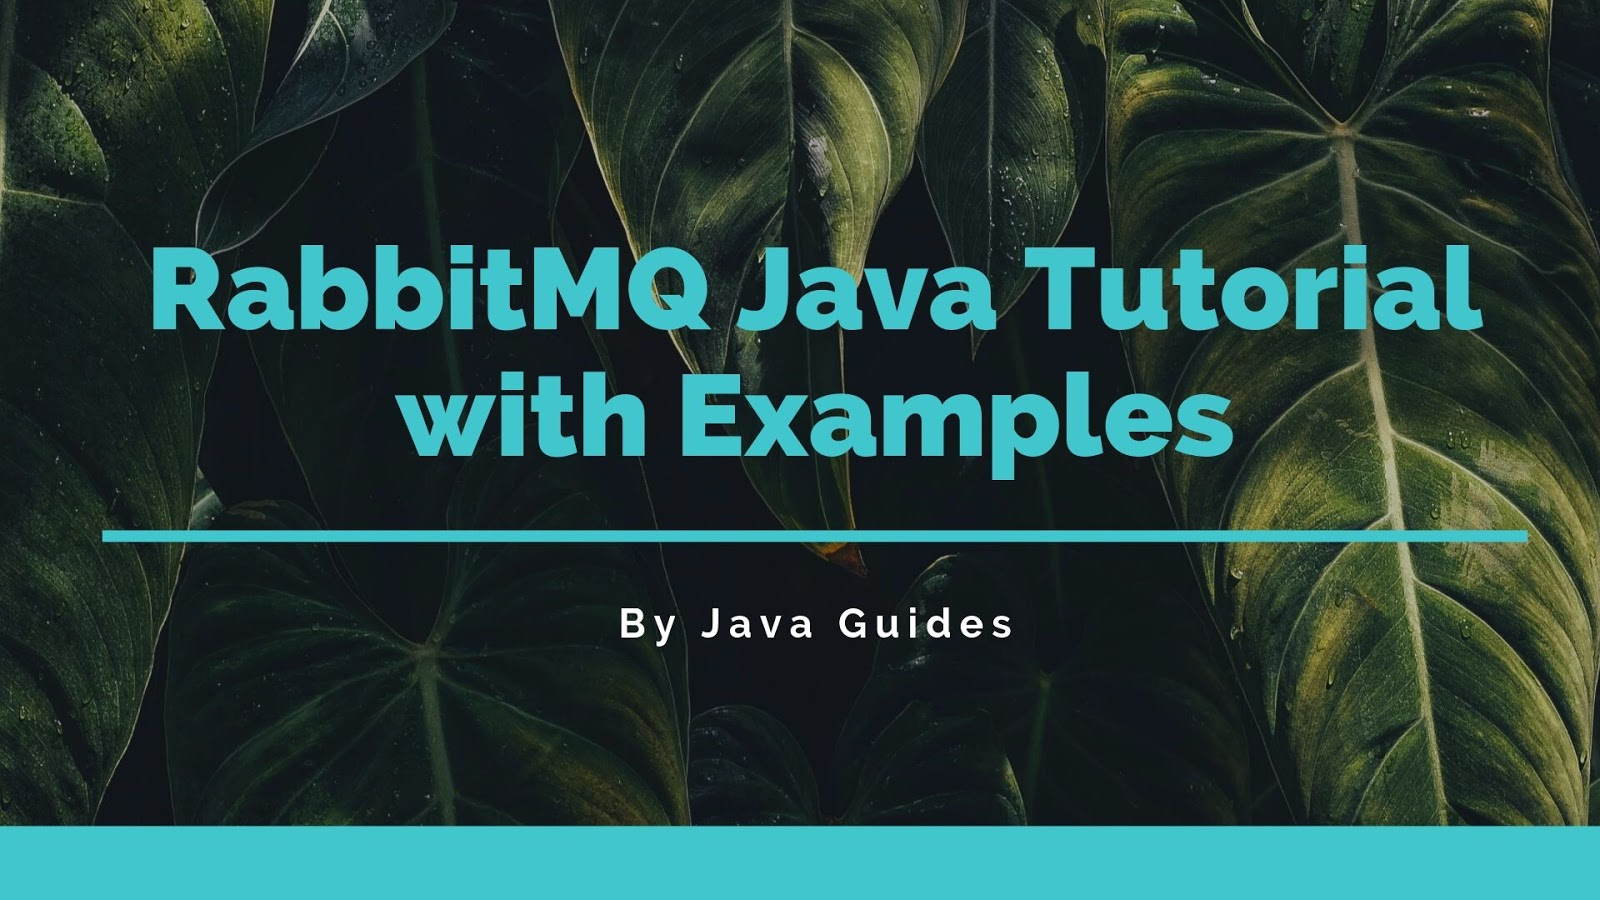 RabbitMQ Java Tutorial with Examples